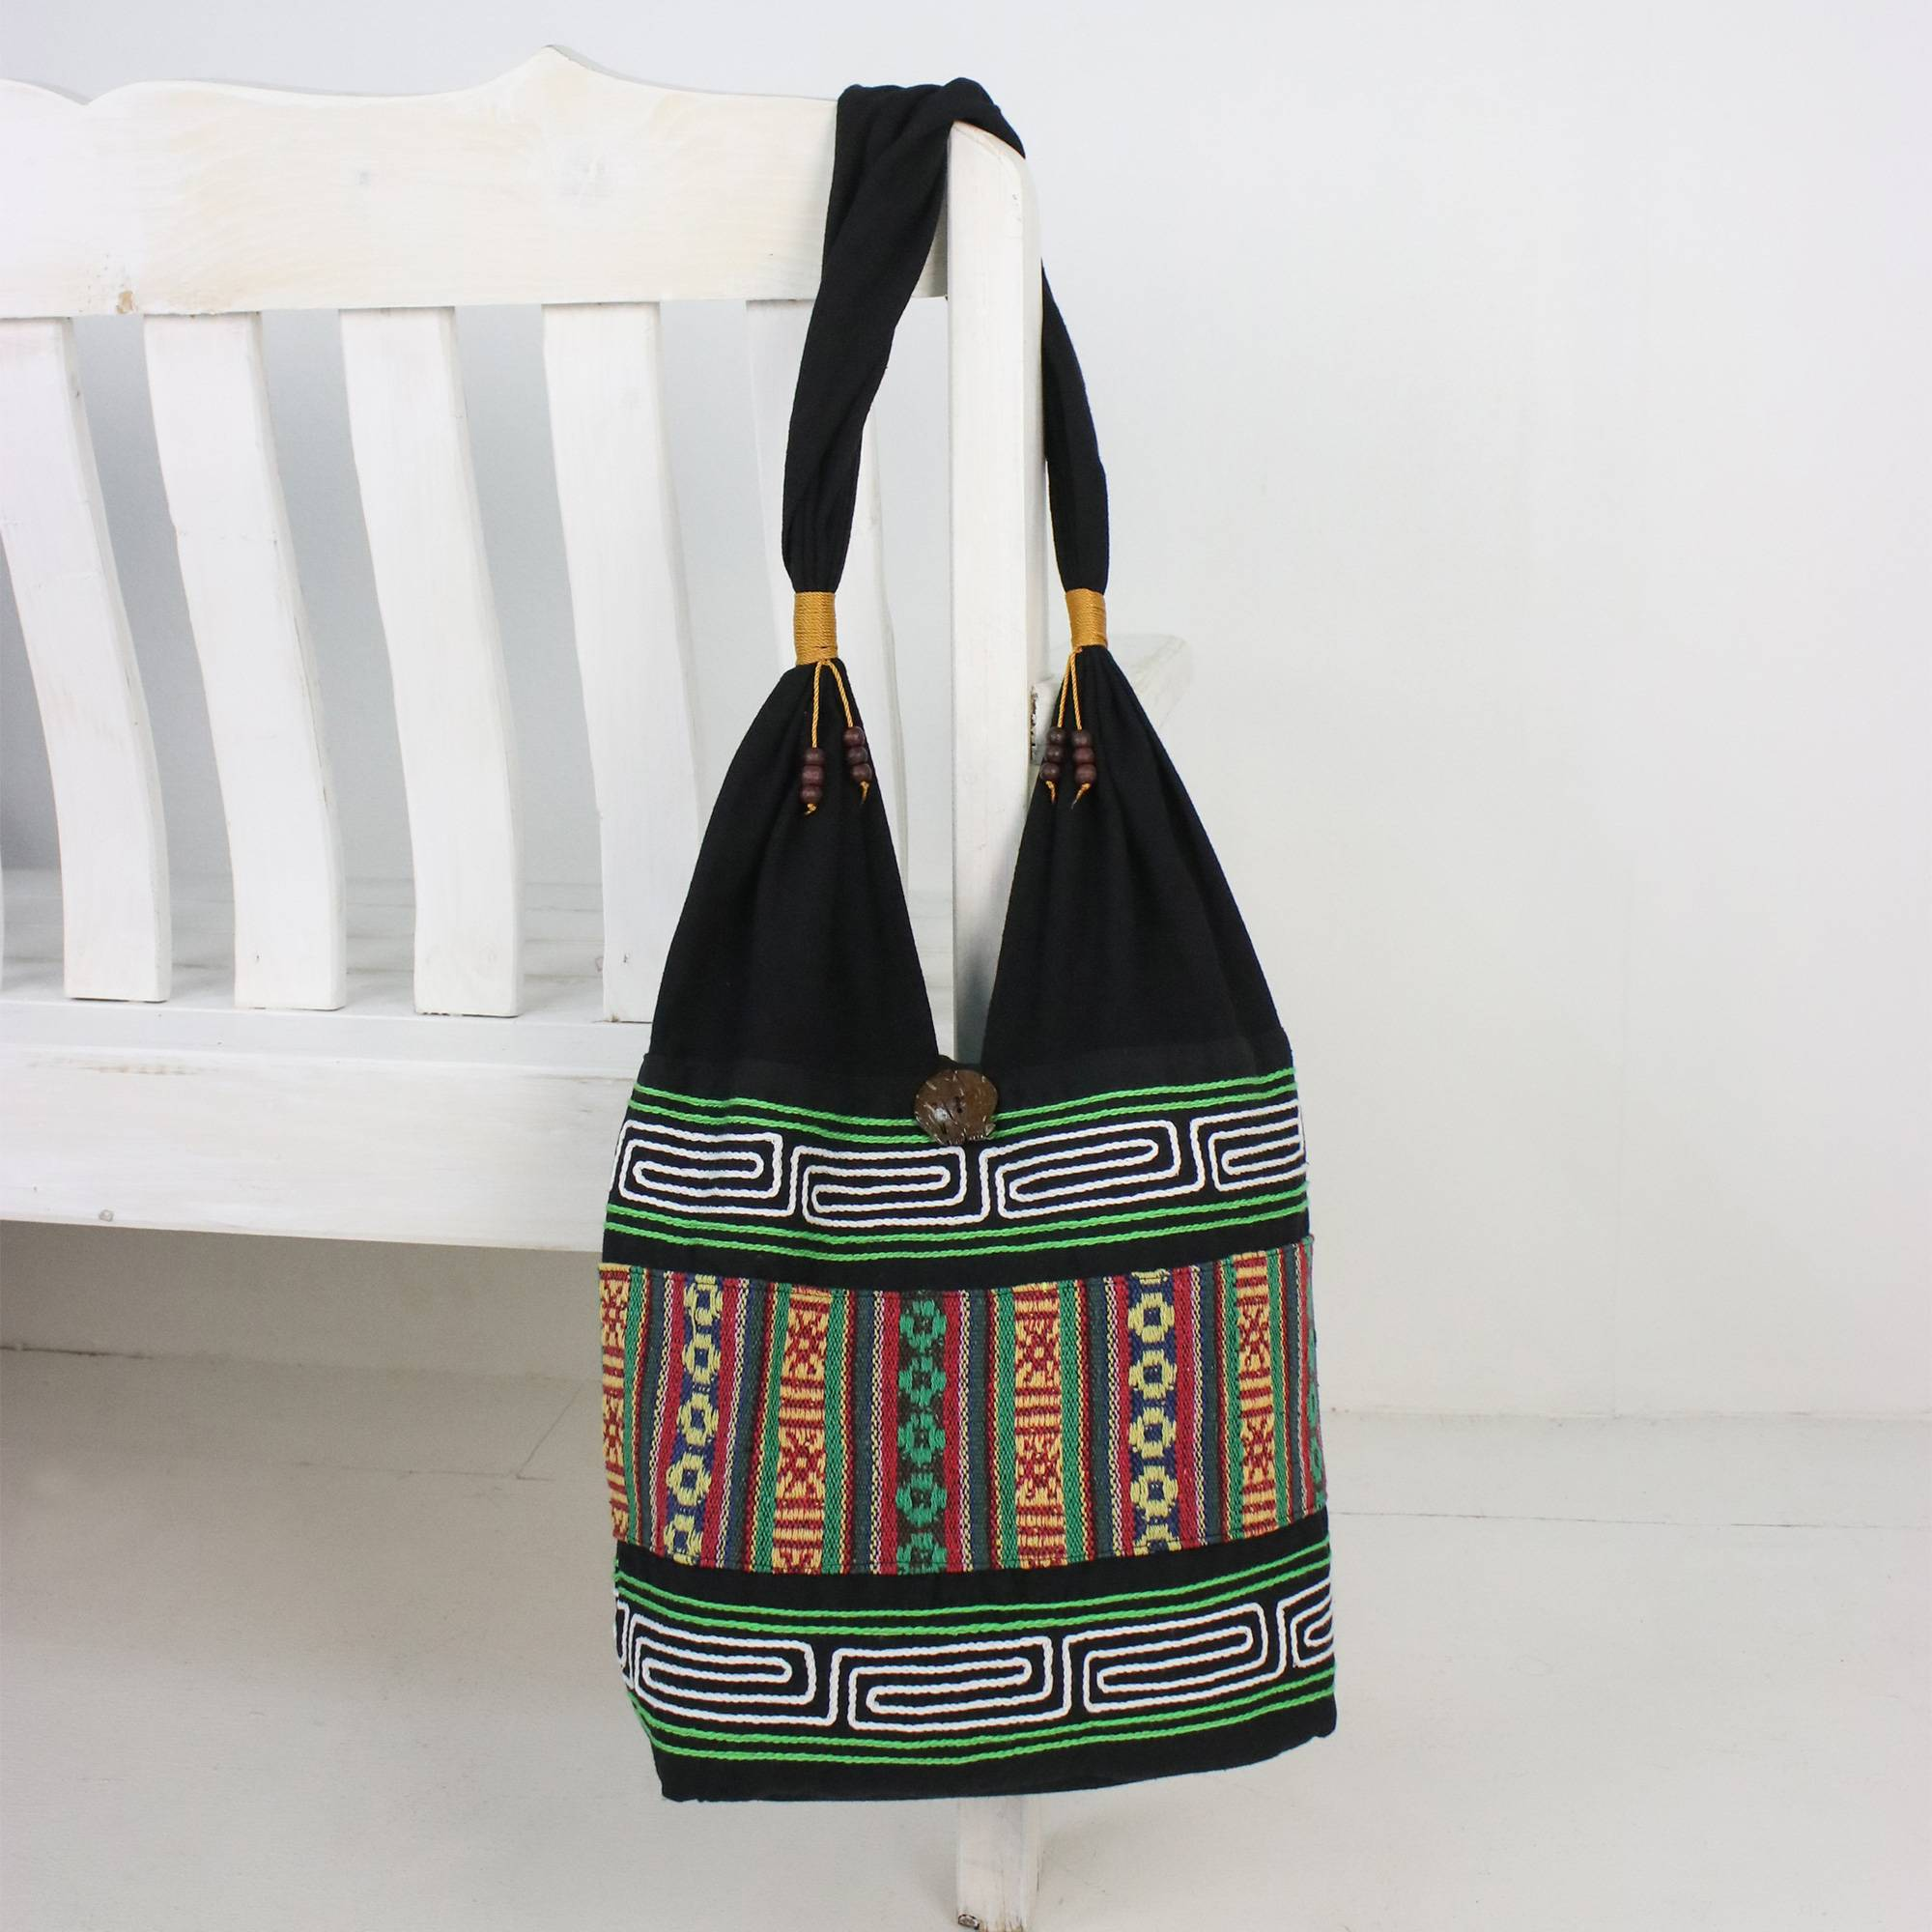 fb188edb674a Embroidered Multicolored Cotton Shoulder Bag from Thailand, 'Thai Hillside'